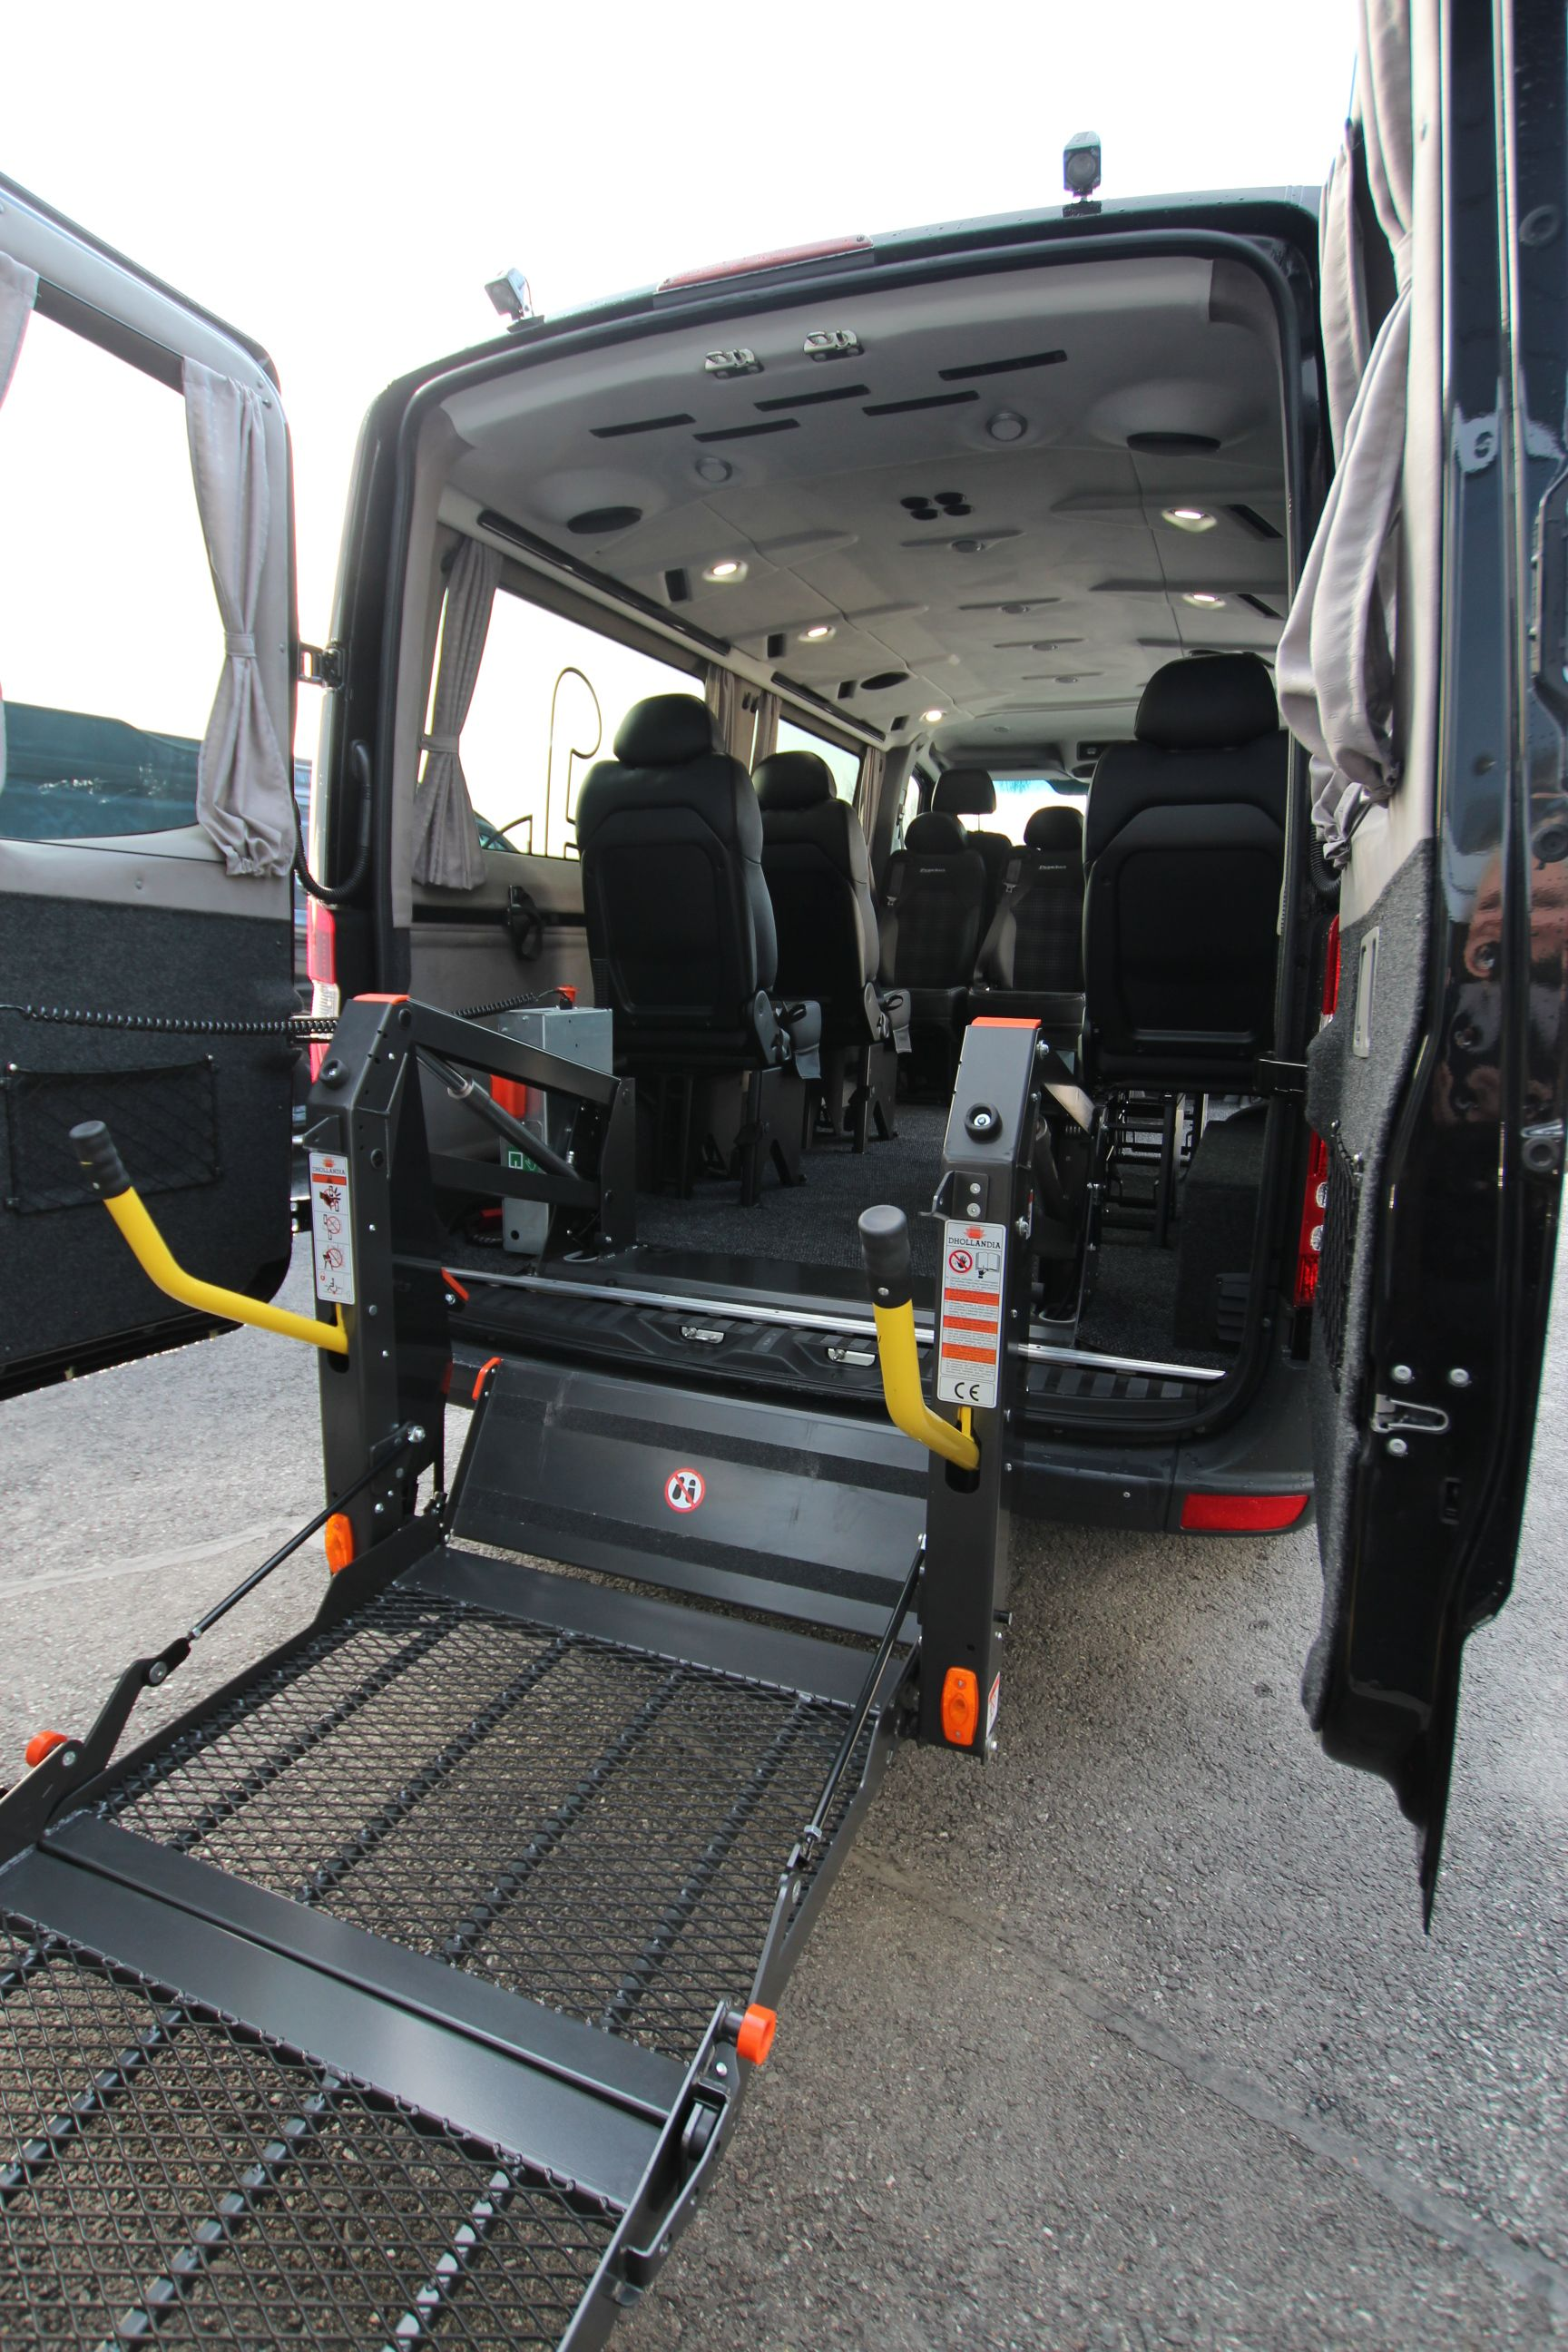 Mercedes Benz Sprinter Tamlans Disabled Taxi with Wheelchair Lift